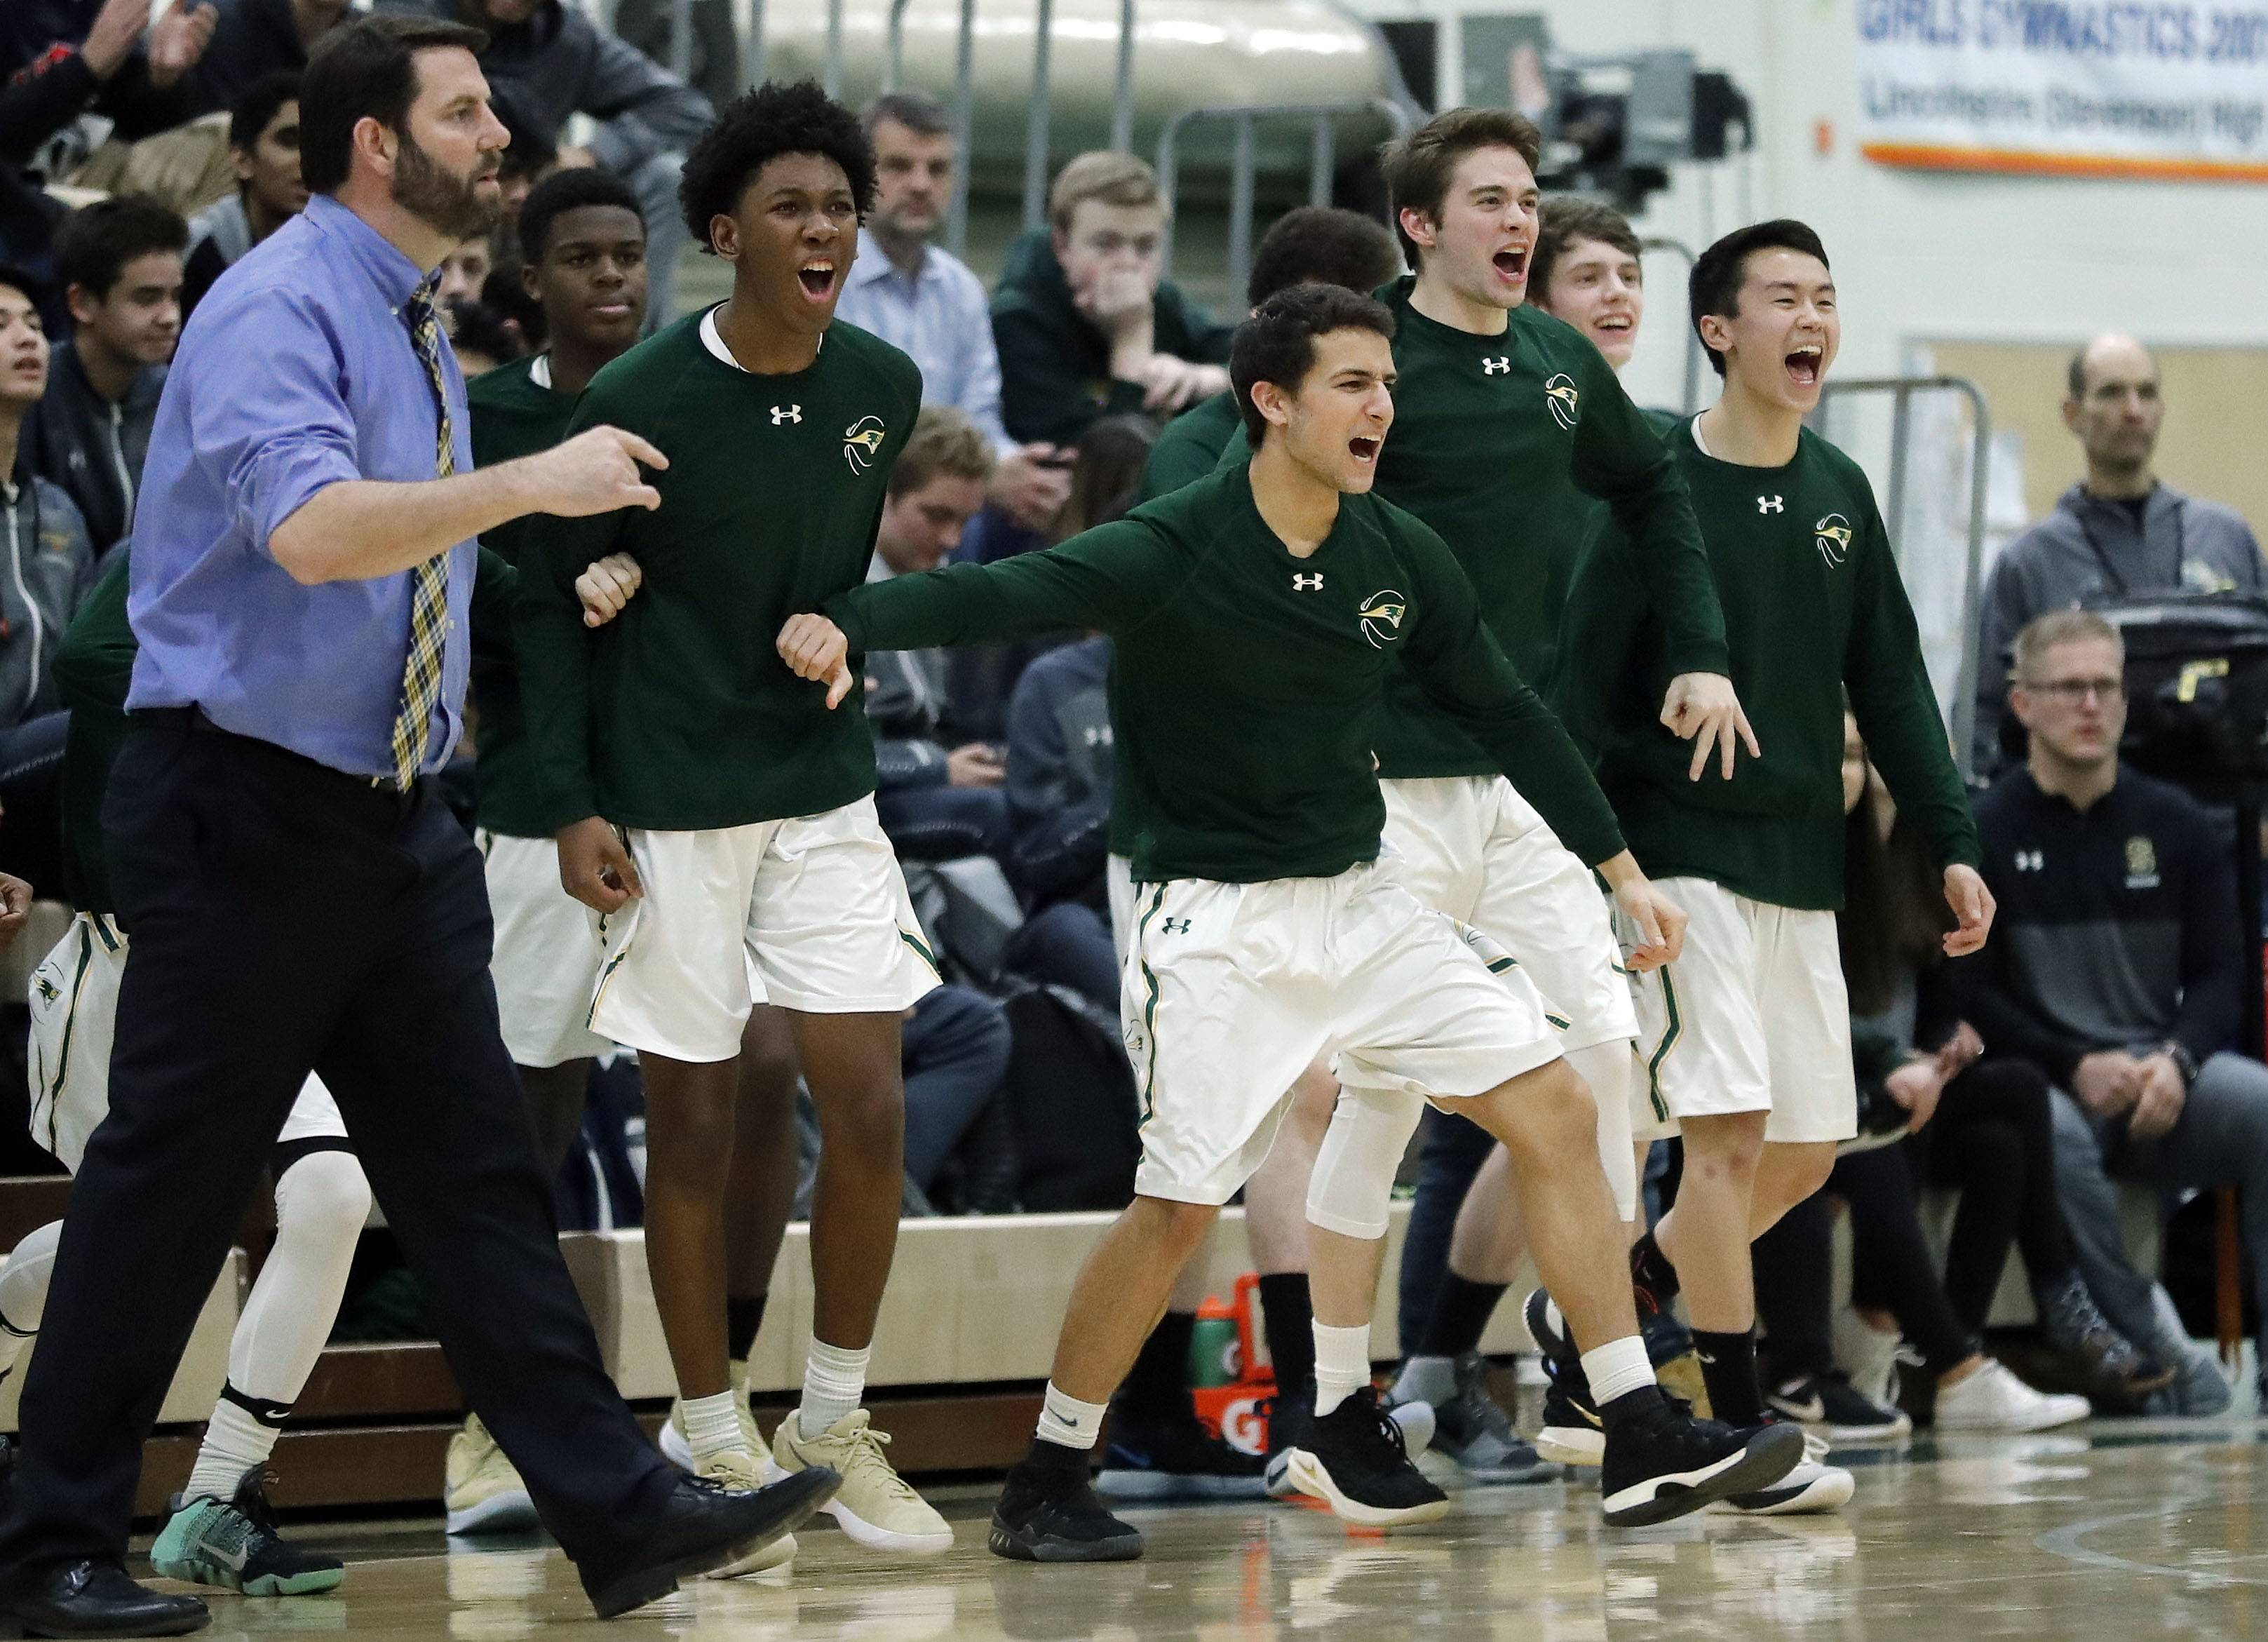 Stevenson's bench cheers during their game against Waukegan Friday night in Lincolnshire.